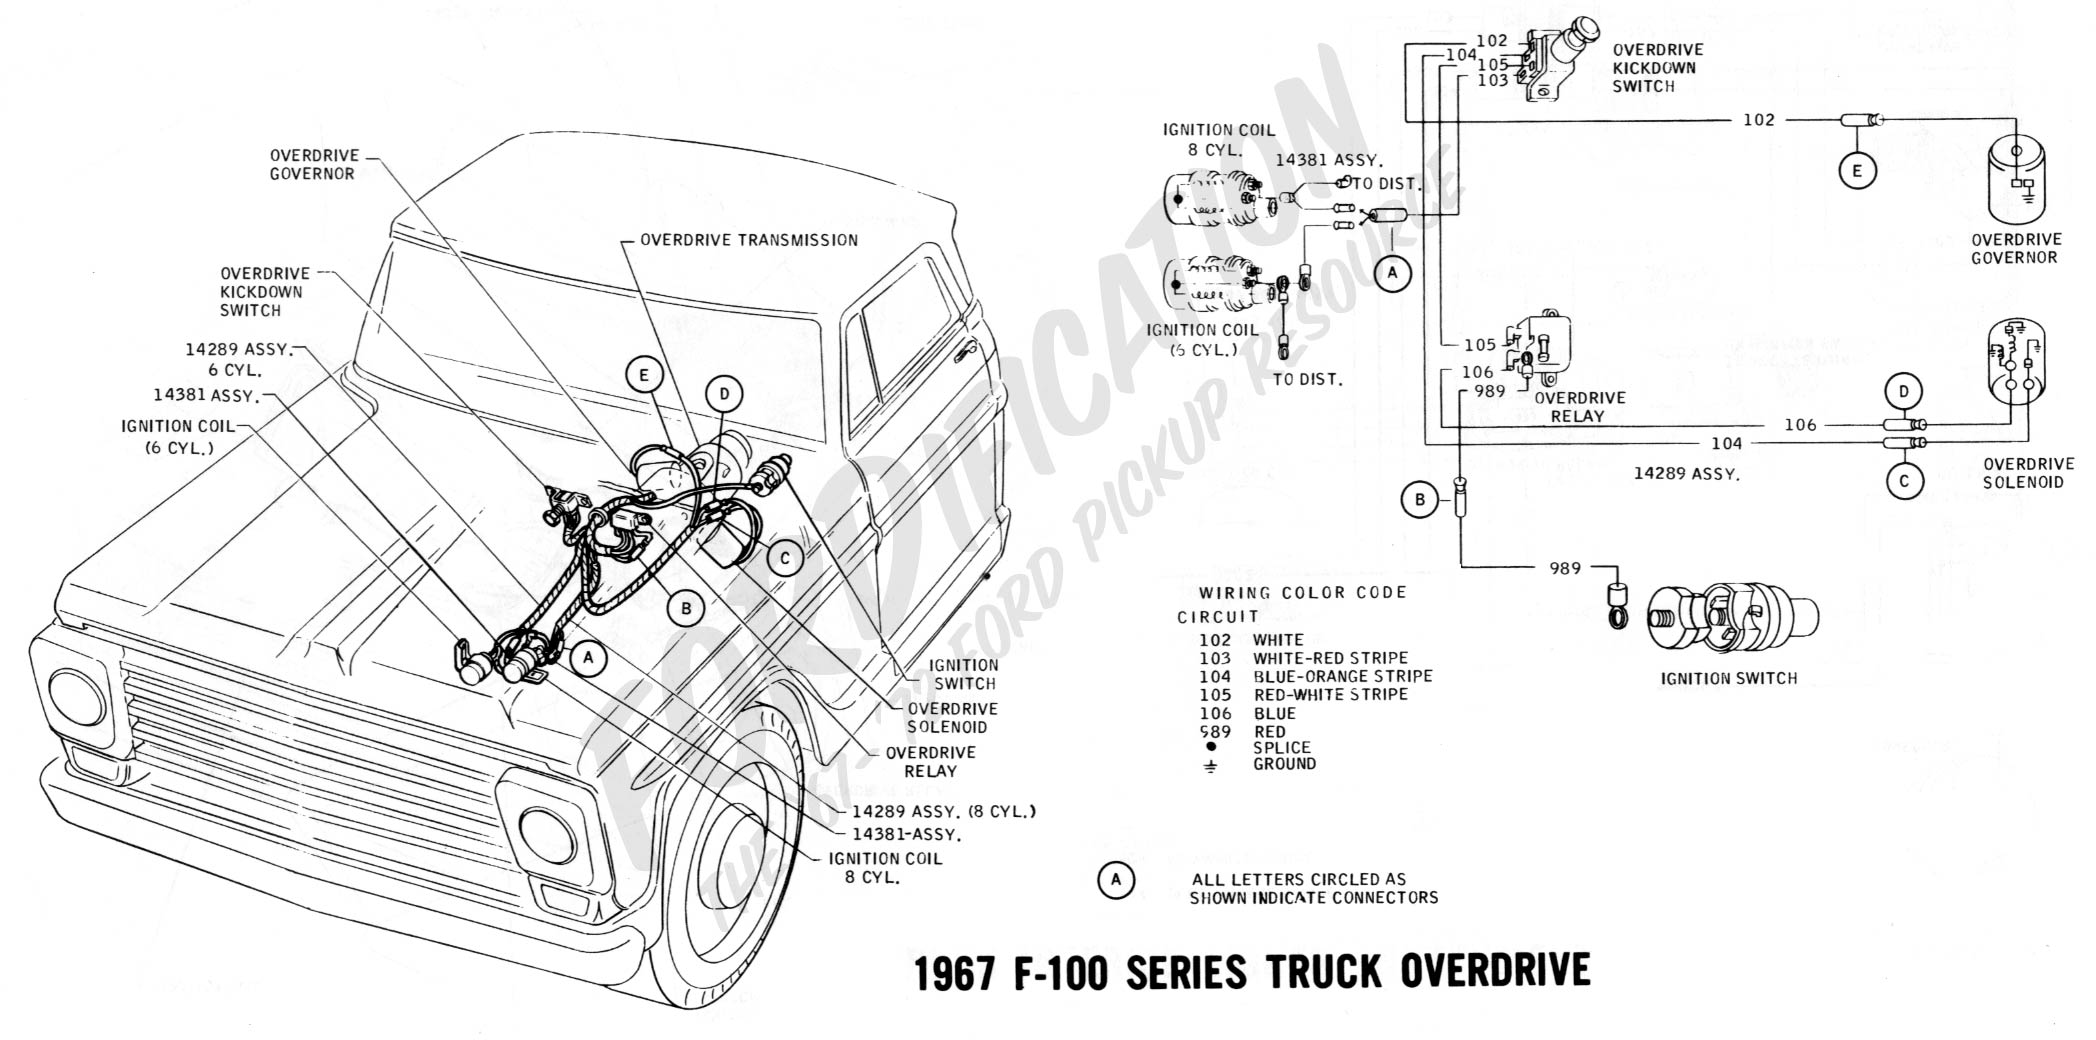 Ford Truck Technical Drawings And Schematics Section H Wiring 1966 Ford  F100 Alternator Wiring Diagram 1966 Ford F100 Wiring Schematic